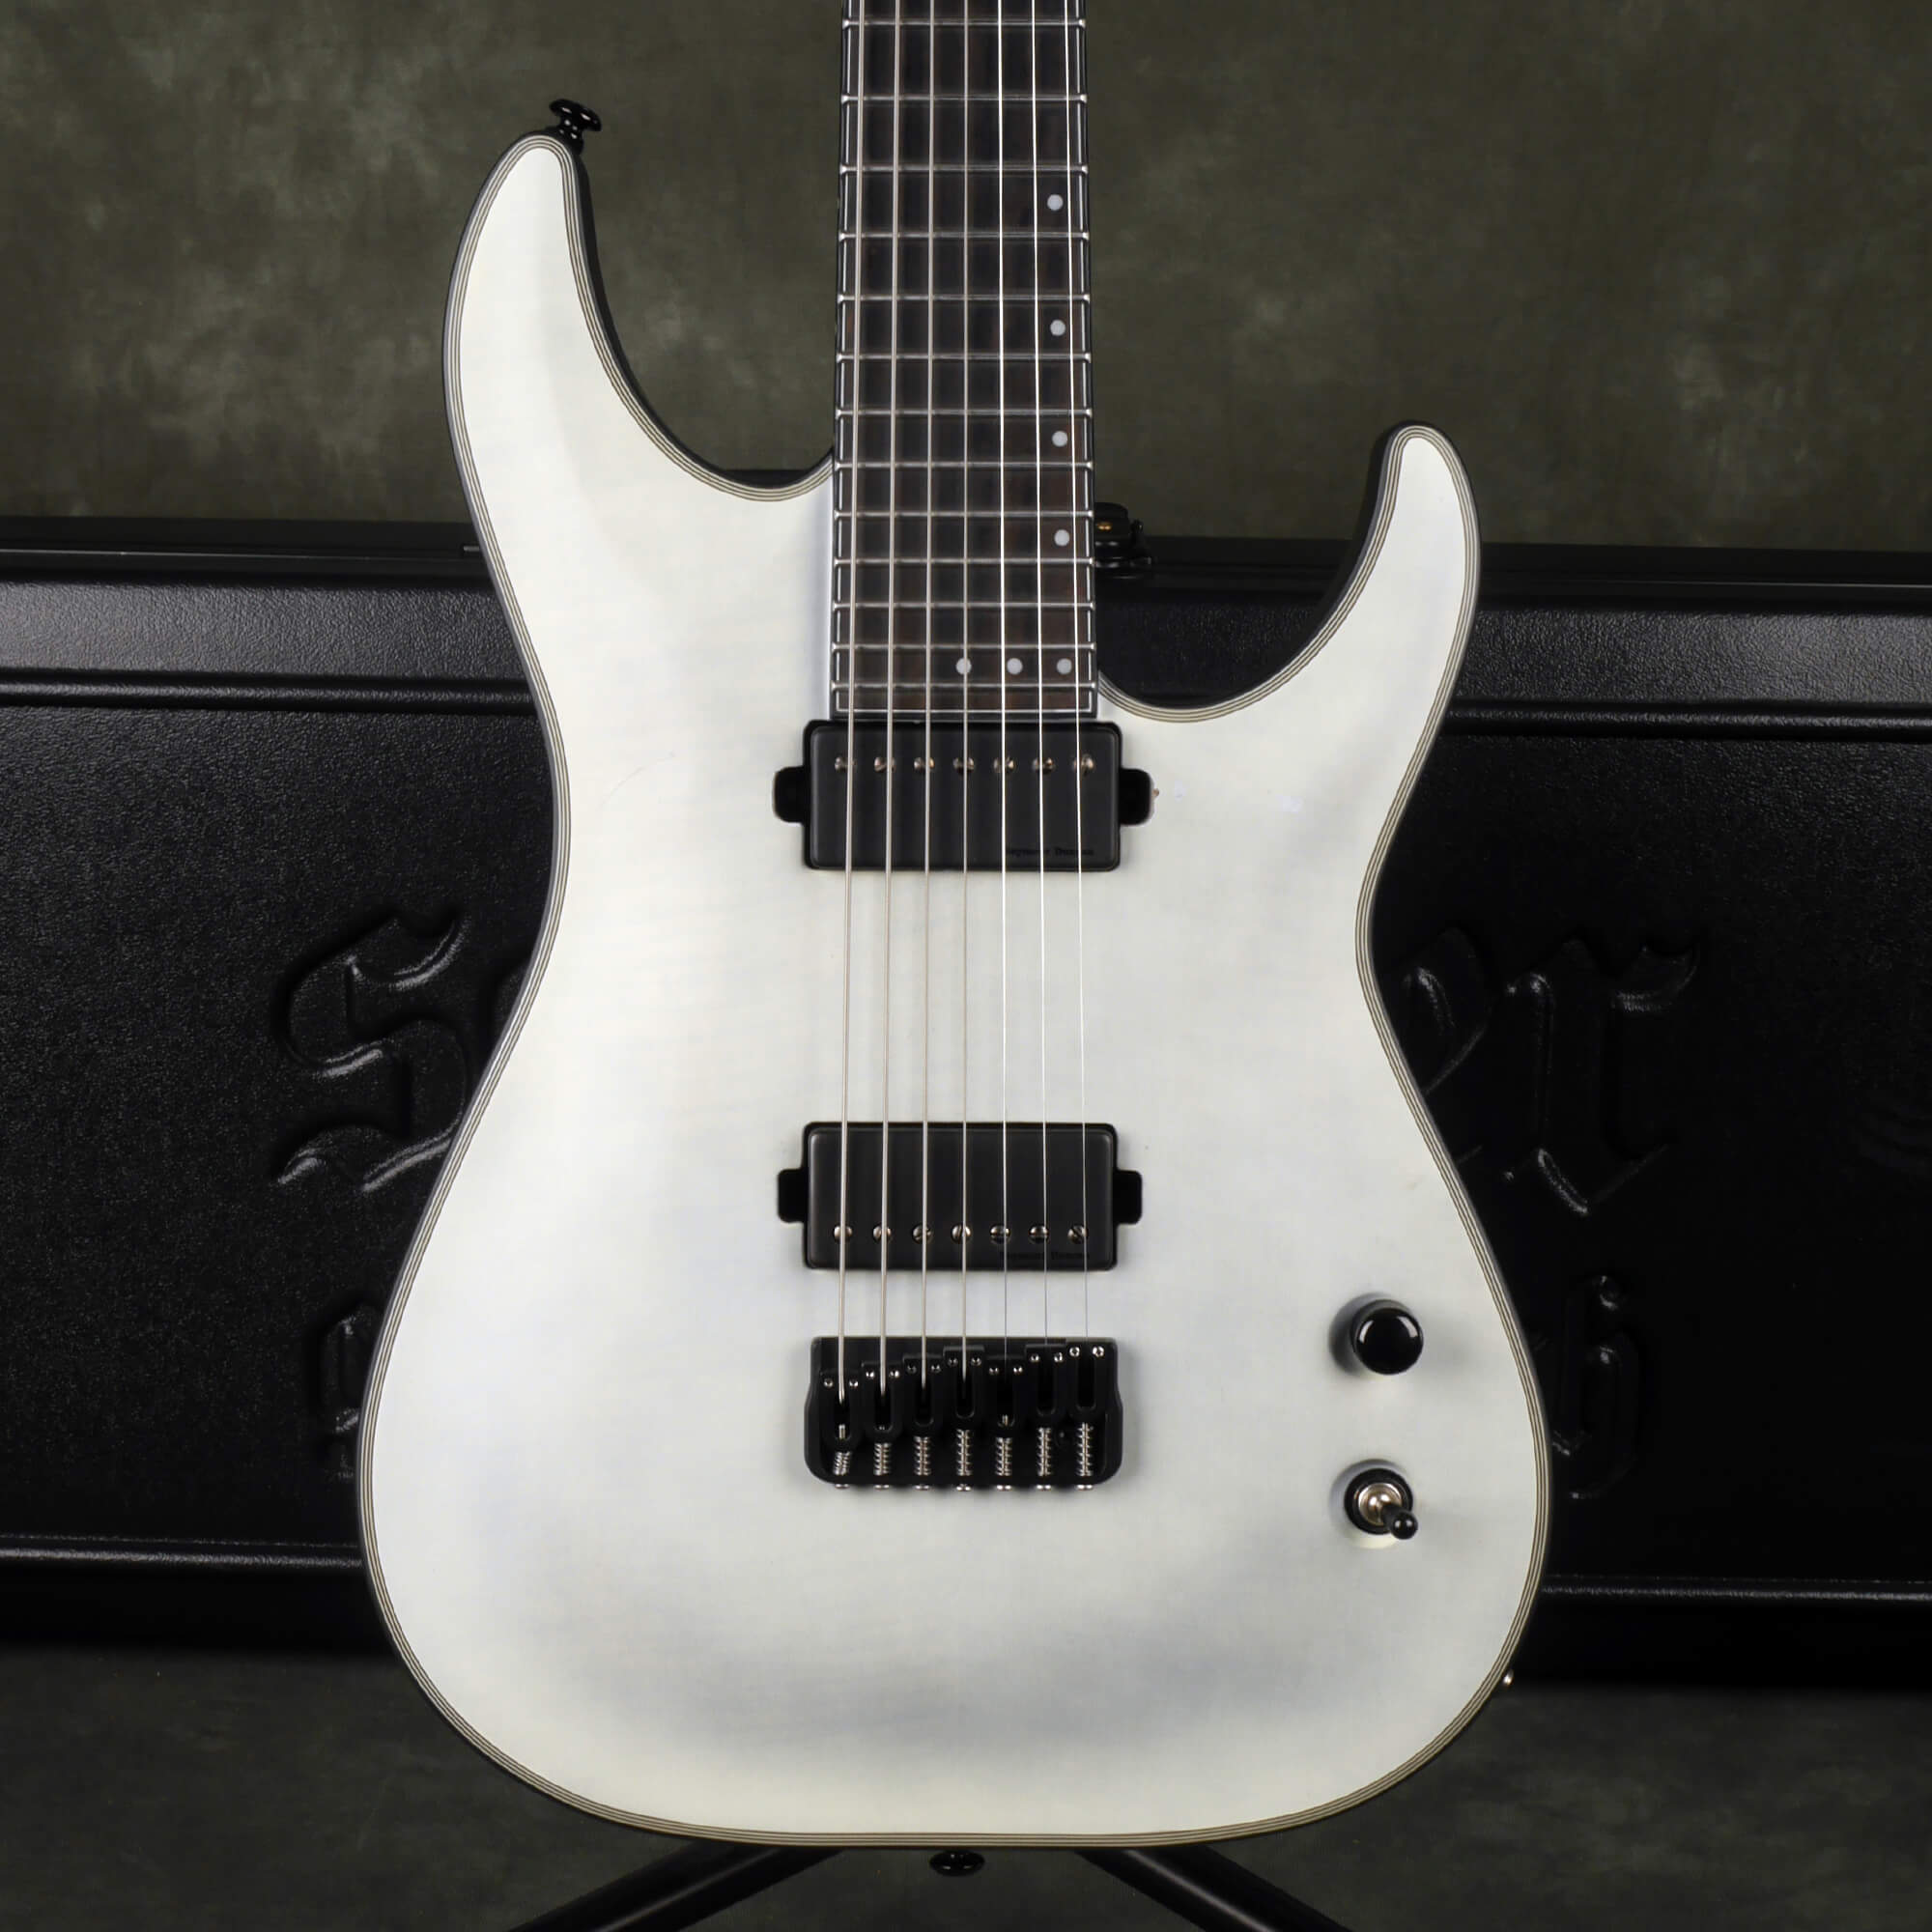 Schecter KM-7 Keith Merrow 7-String - Trans White Stain w/Hard Case - 2nd Hand